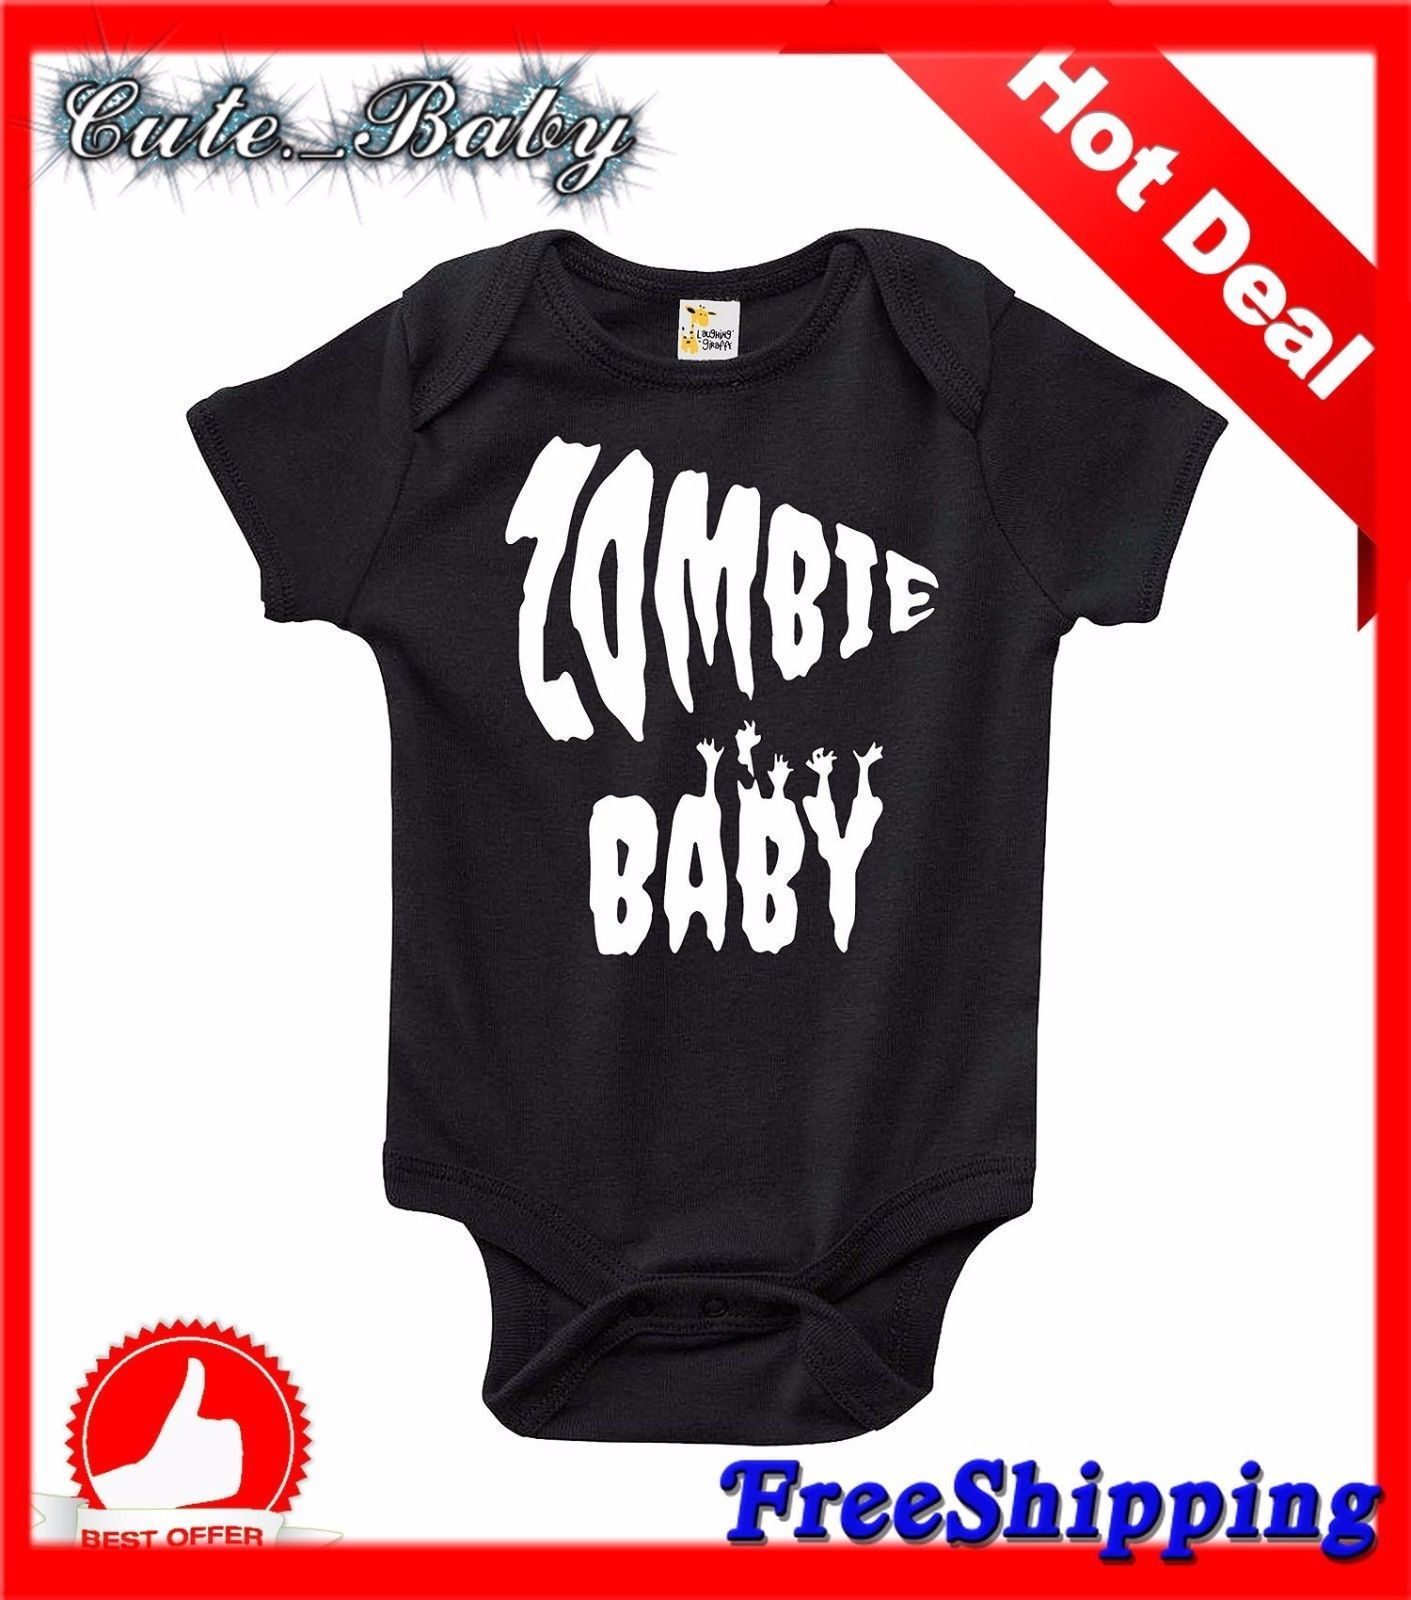 The Zombie Baby Bodysuit That Wins The Hearts of All Out with the